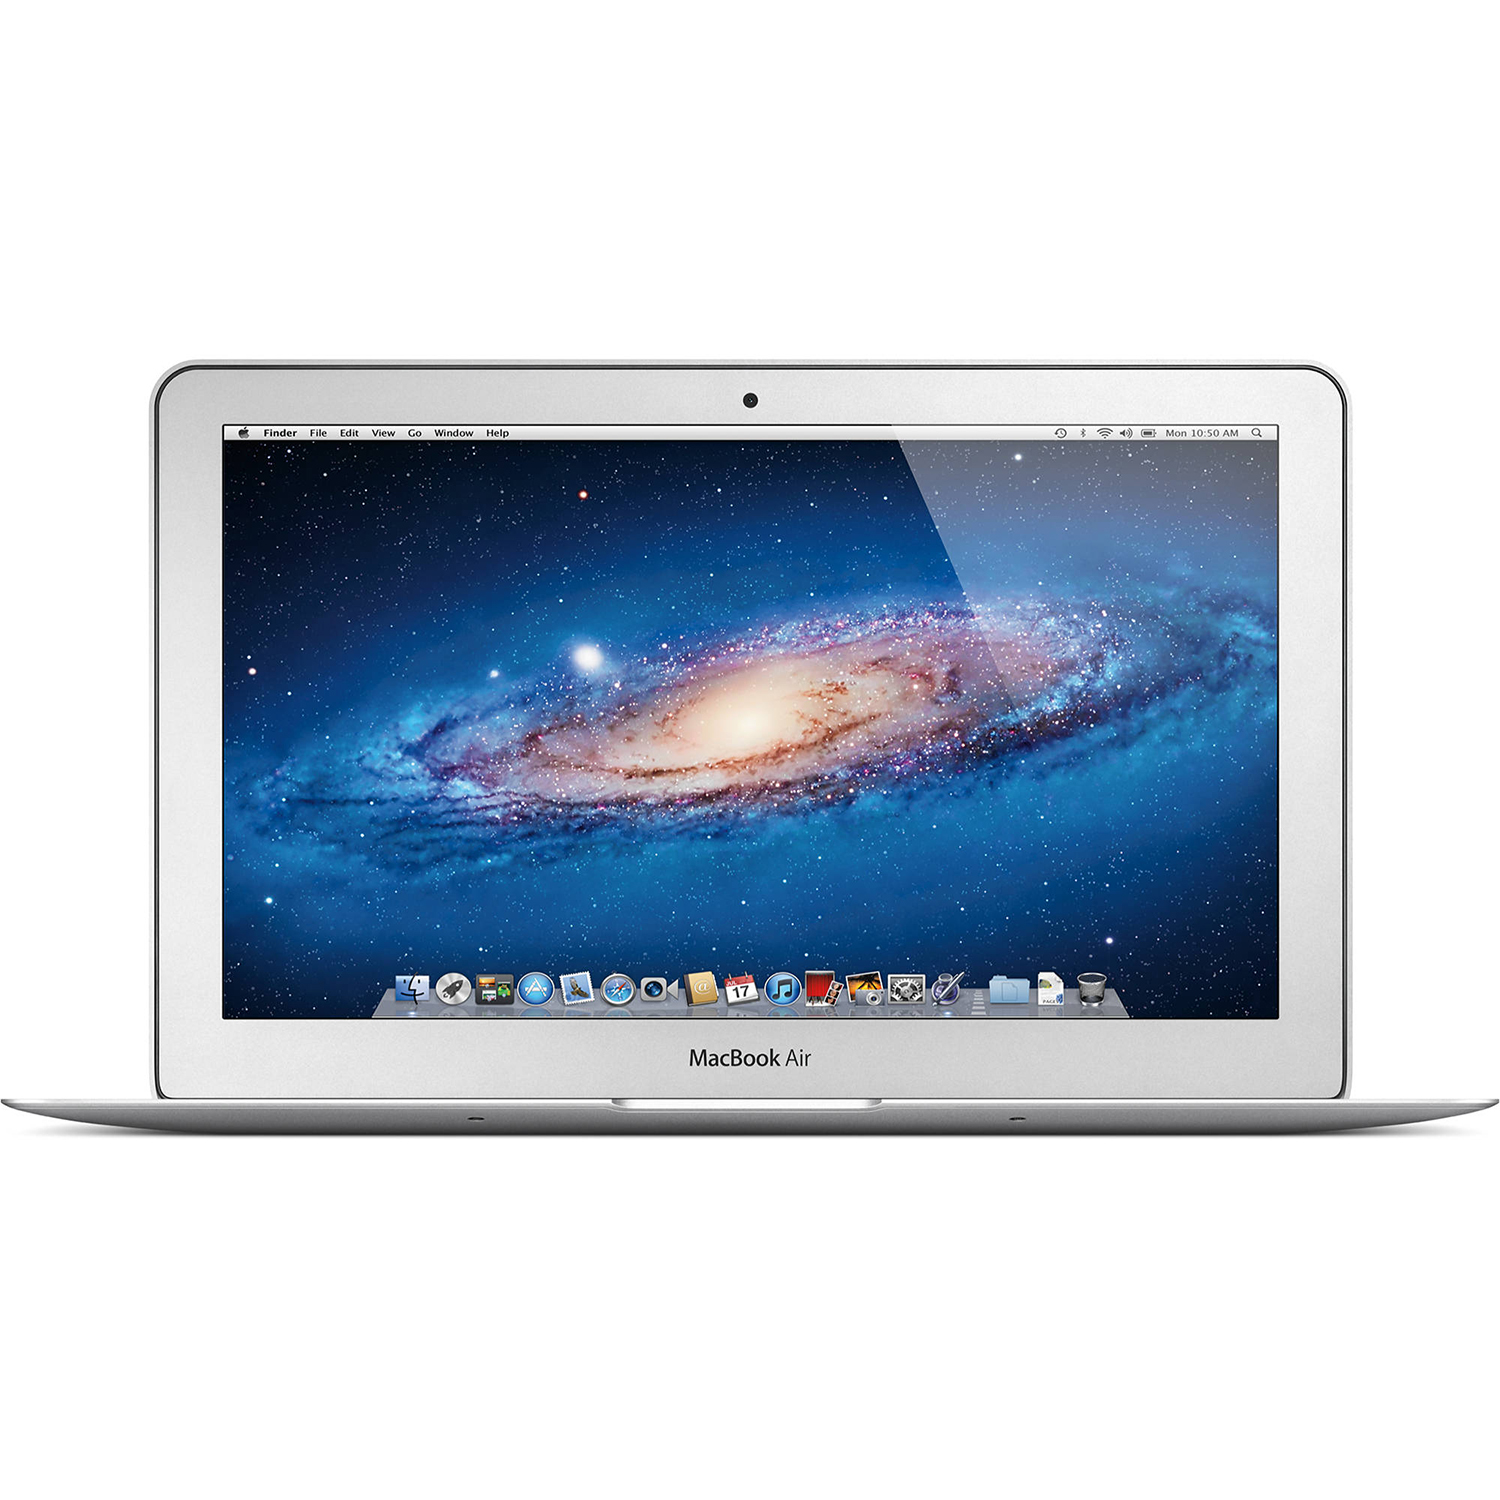 "Refurbished Apple MacBook Air 11.6"" LED Laptop Intel i5-3317 1.7GHz 4GB 64GB SSD - MD223LLA"